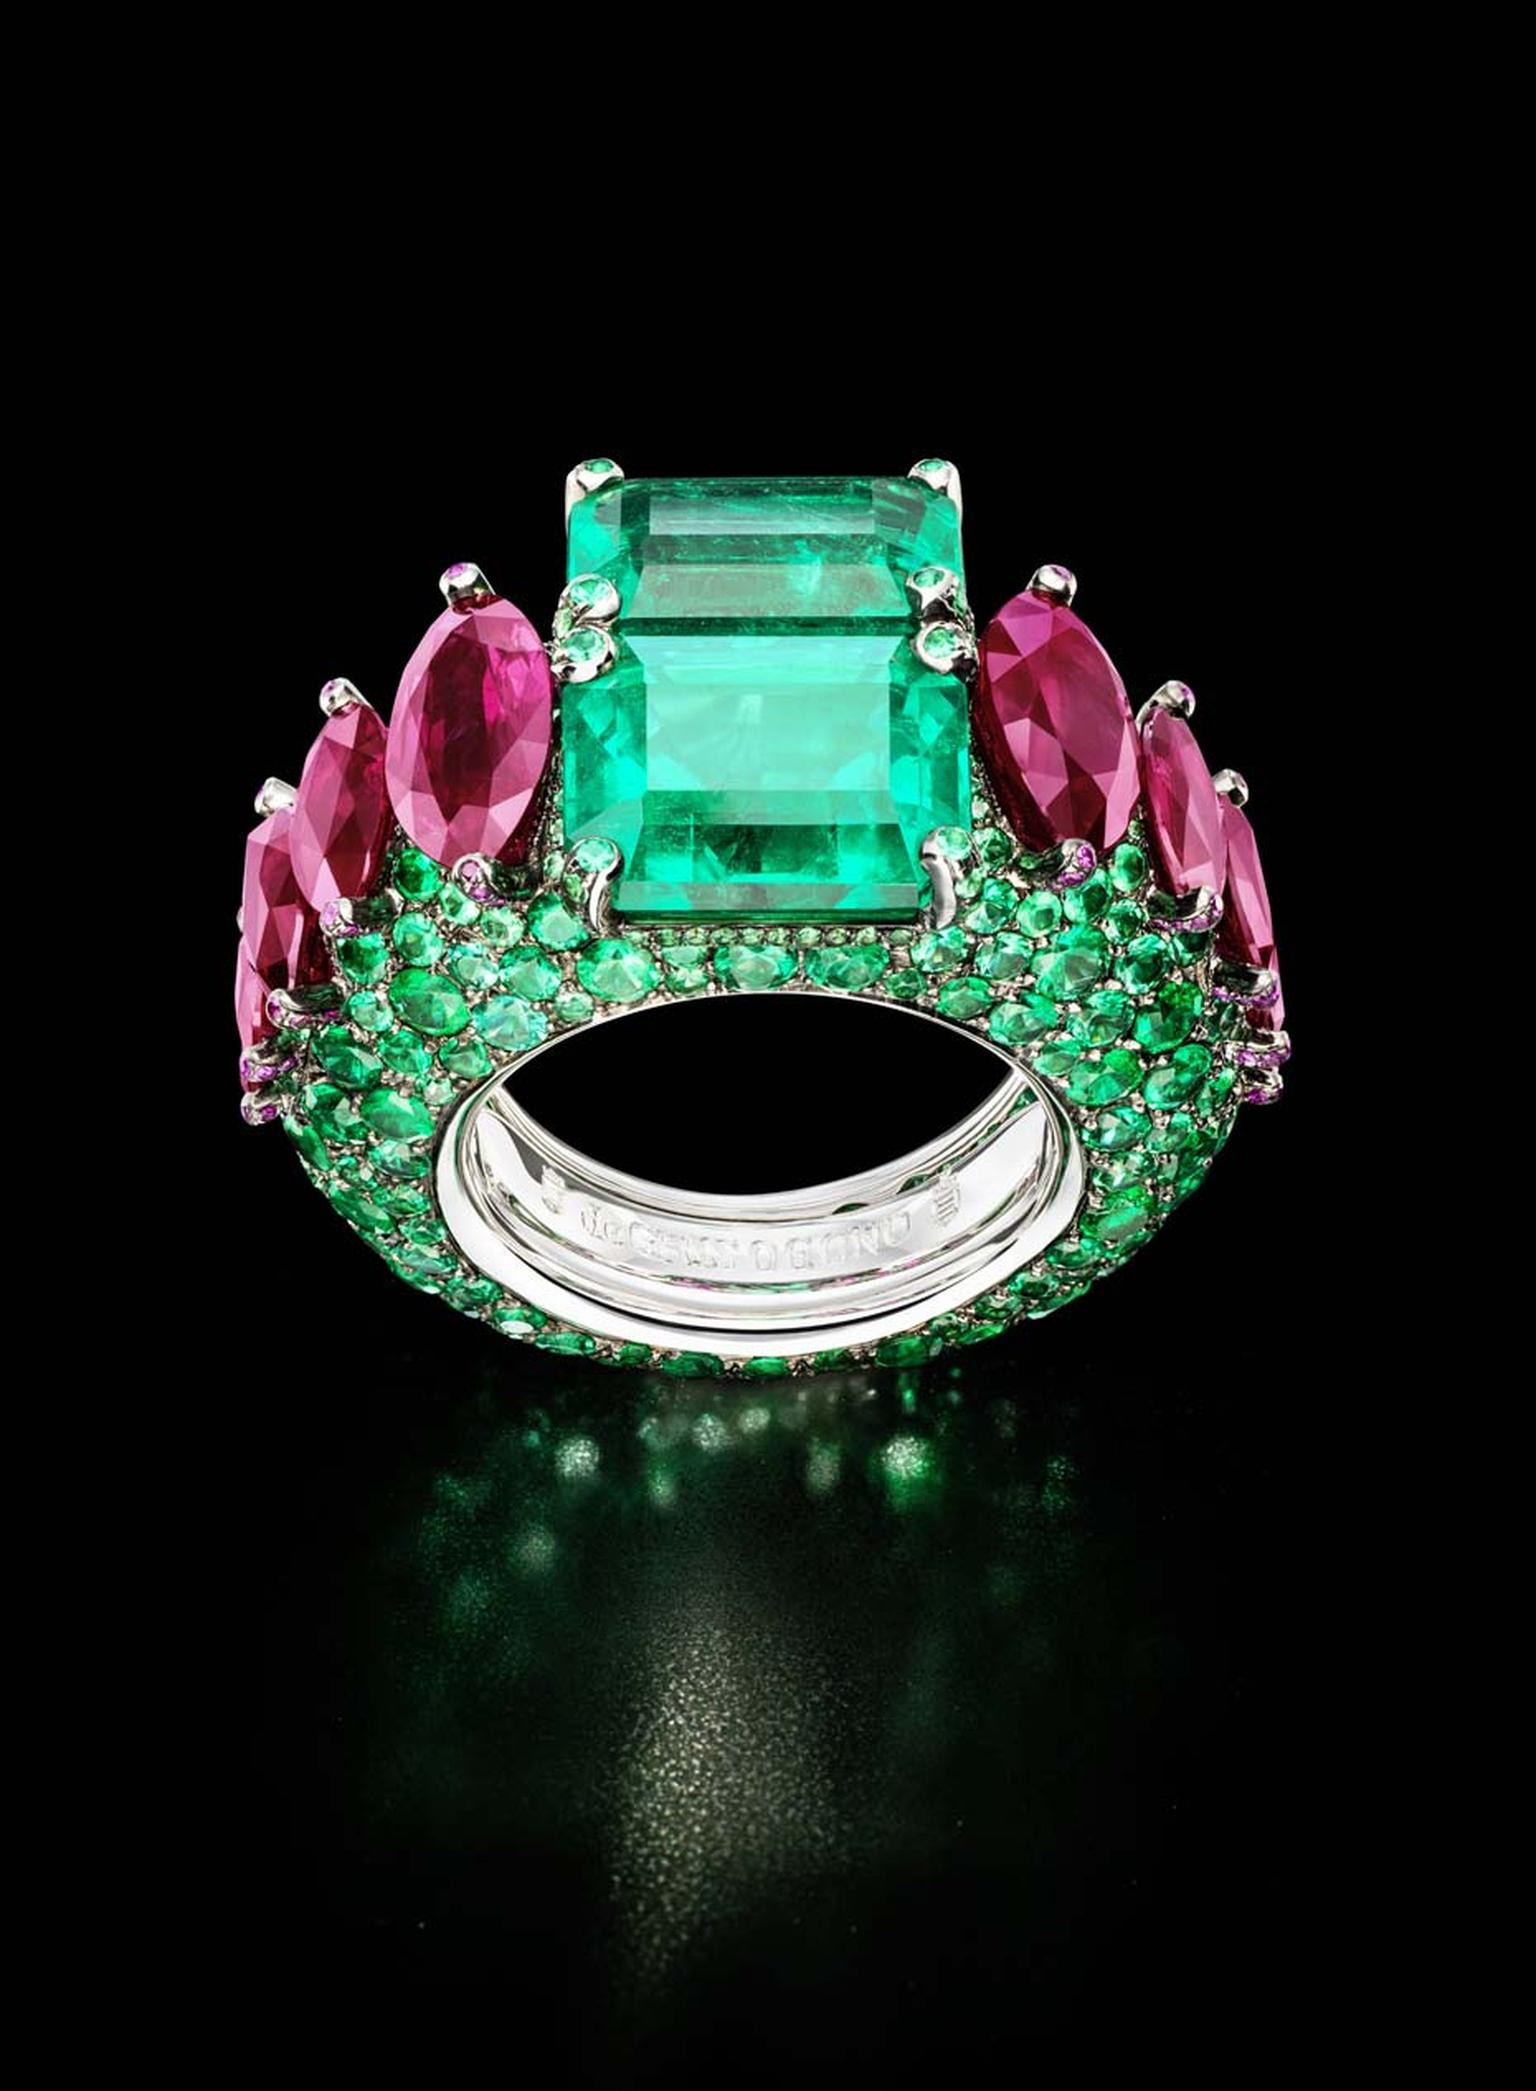 The de GRISOGONO white gold ring featuring two cushion-cut emeralds, 320 brilliant-cut emeralds and 79 rubies, as worn by Sharon Stone at de GRISOGONO's Eden Roc party